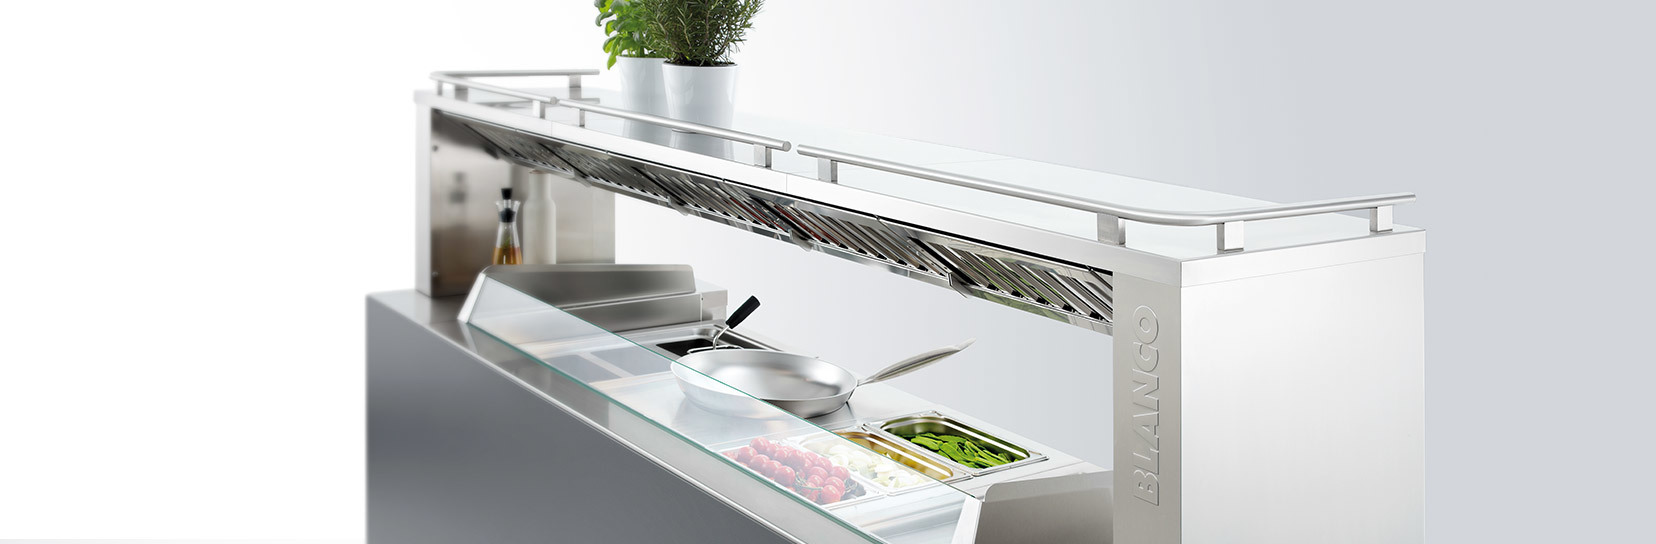 Teaser_blanco_cook-front-cooking-system_1656x544-01